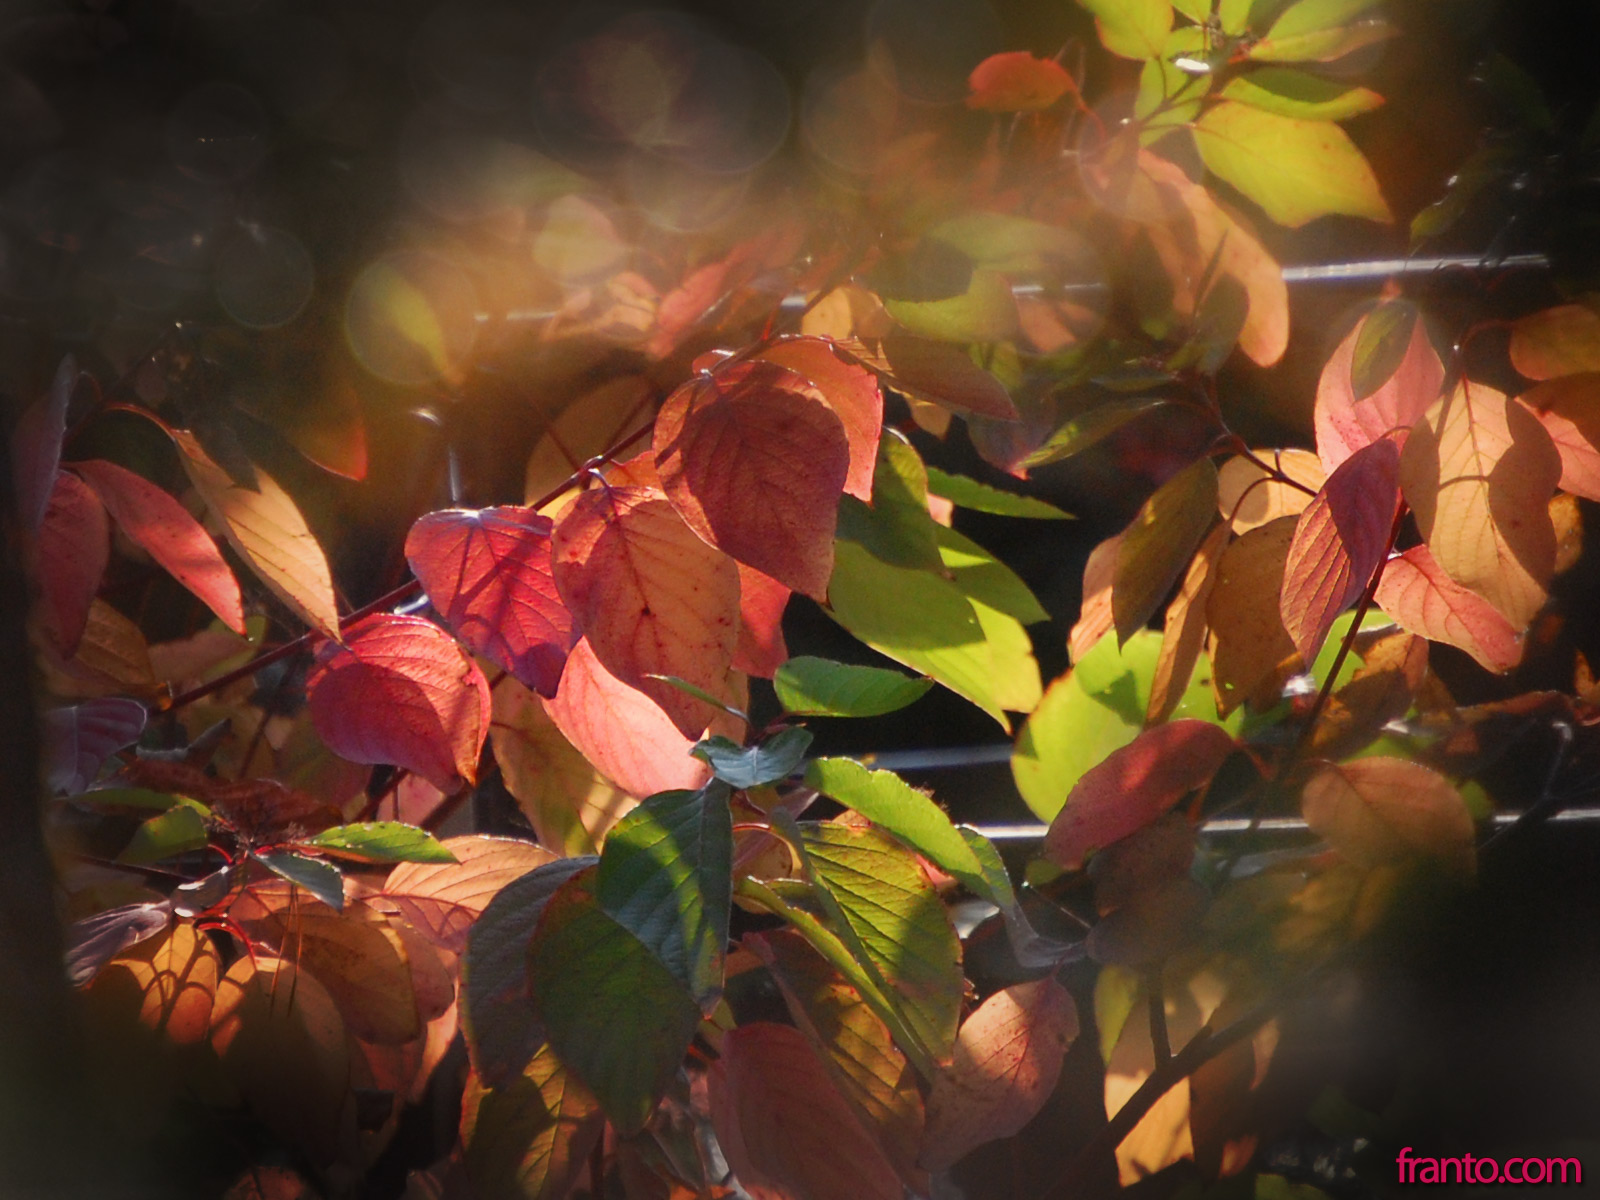 We called the wallpaper Rose Autumn. So if you like Rose Autumn,